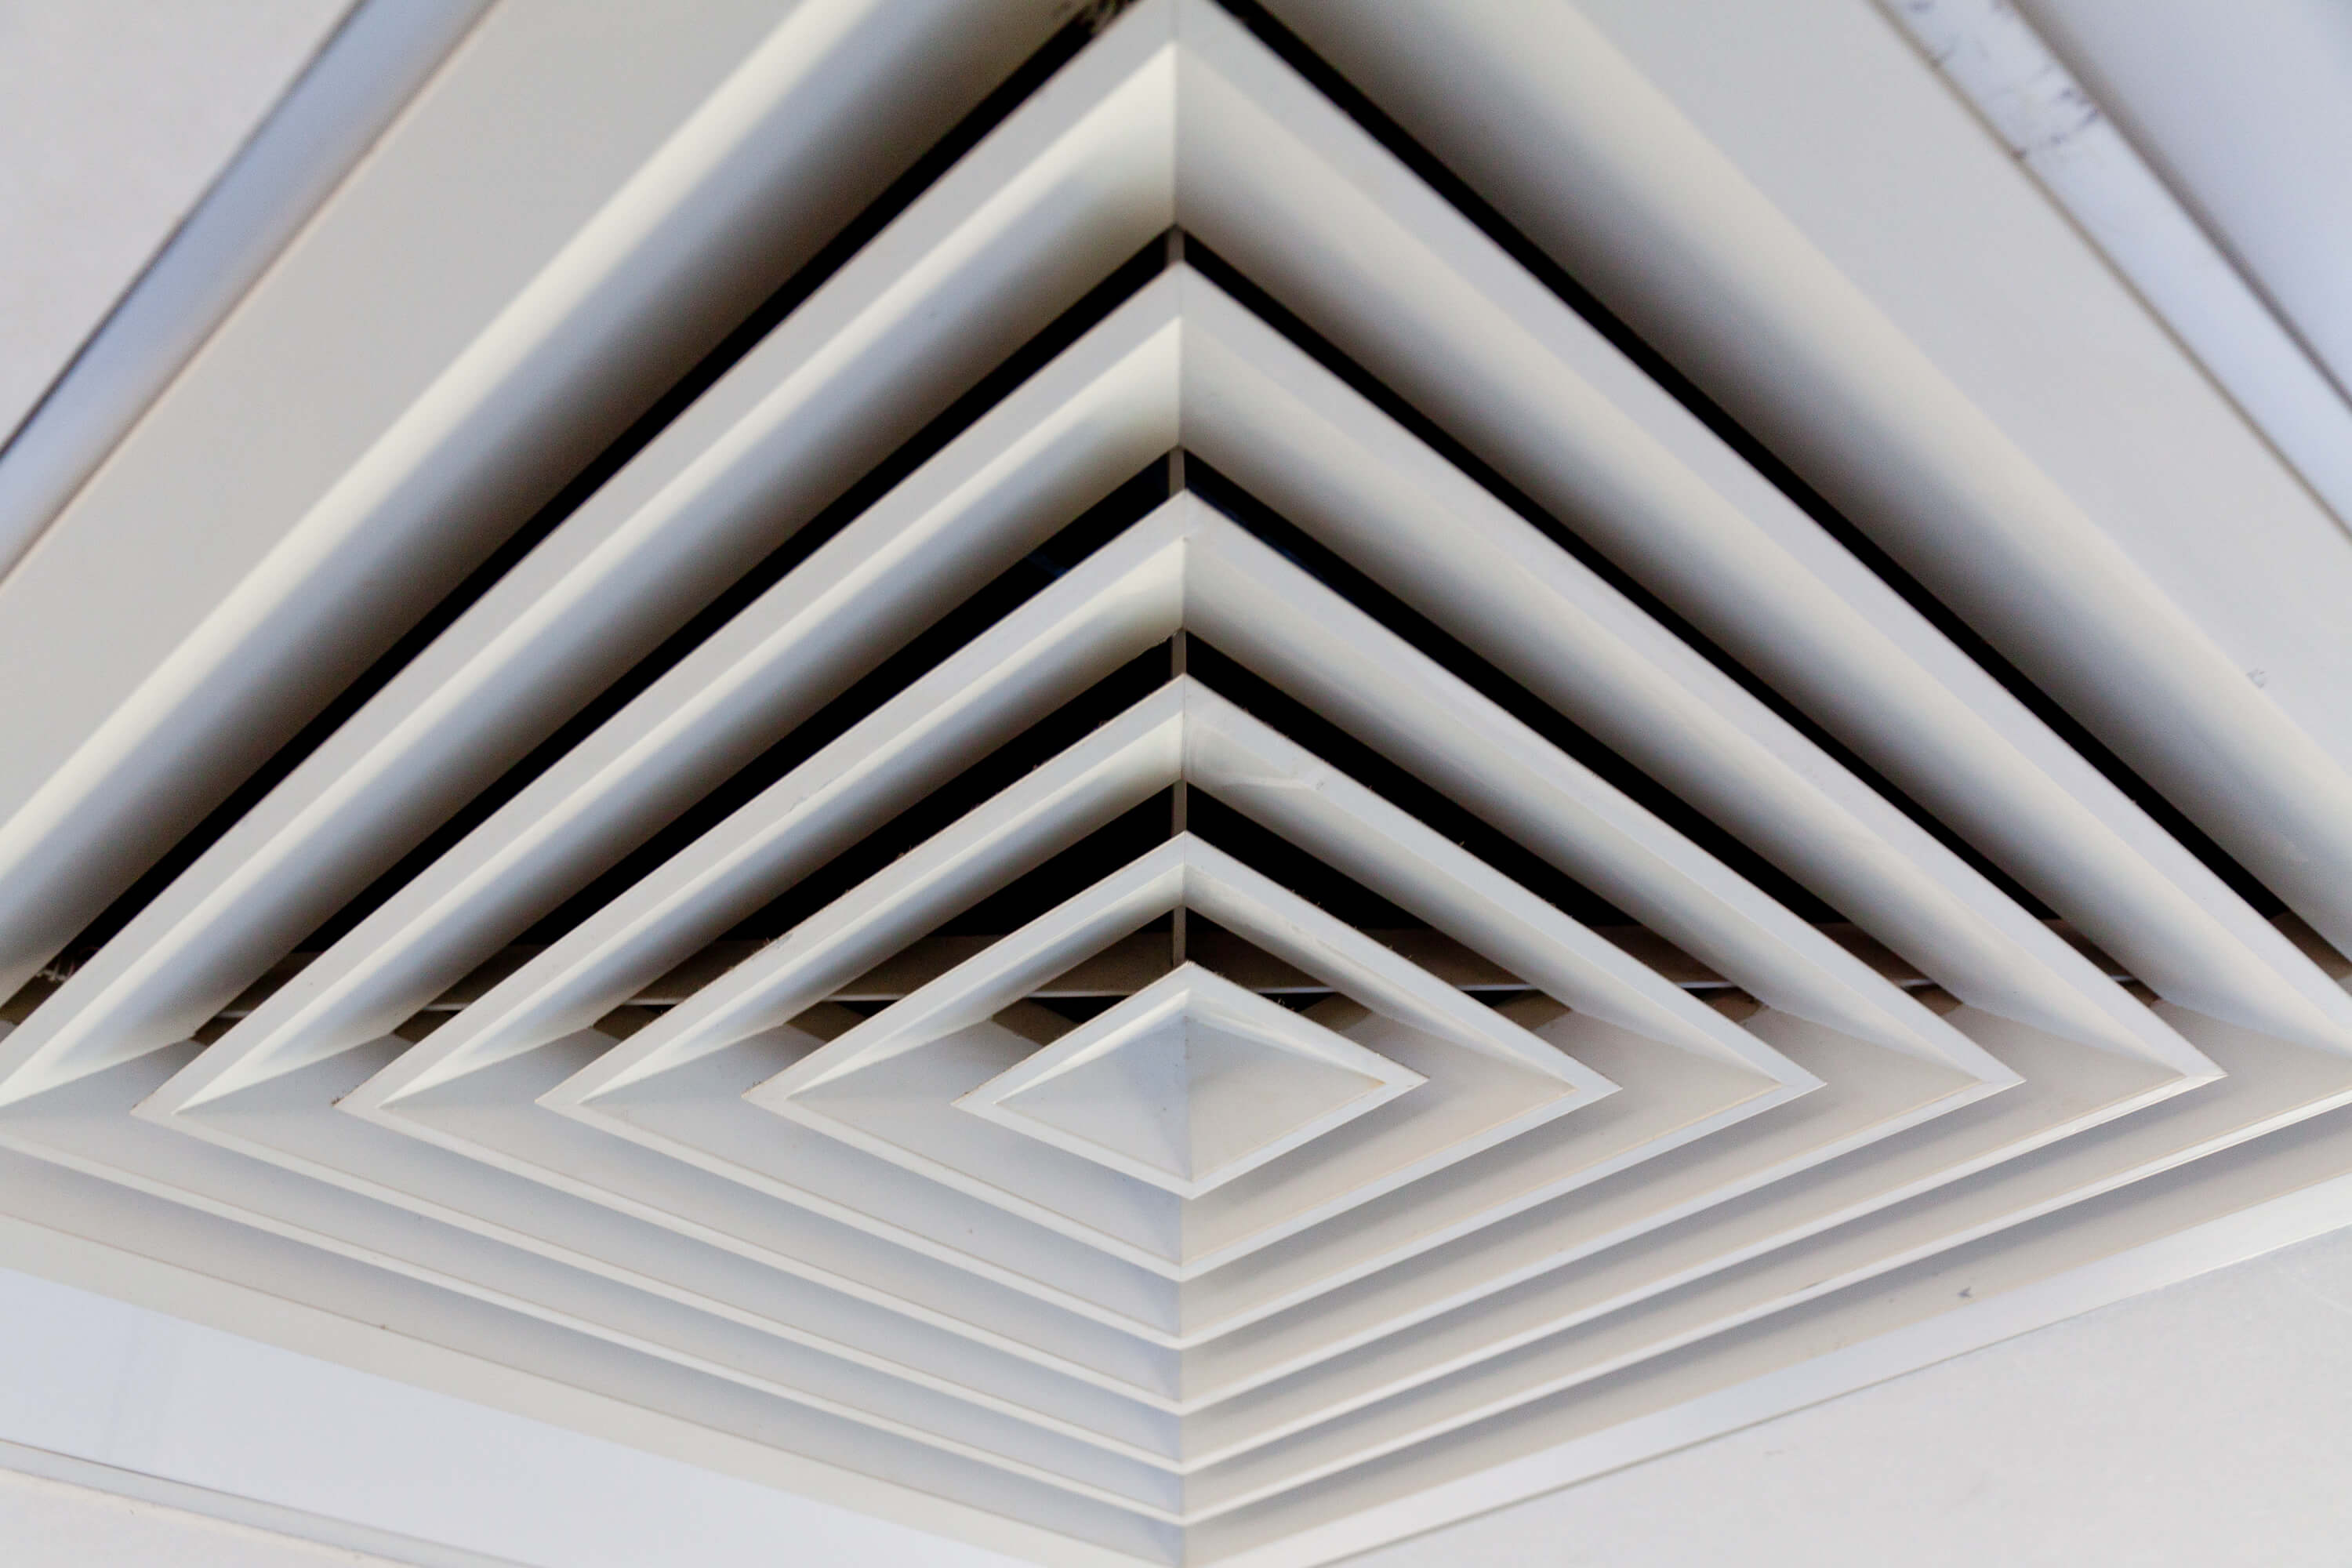 #231C18 Why Your Air Con Vents Aren't Working And How To Fix Them  Best 12453 How Much For Ducted Air Conditioning photos with 3000x2000 px on helpvideos.info - Air Conditioners, Air Coolers and more